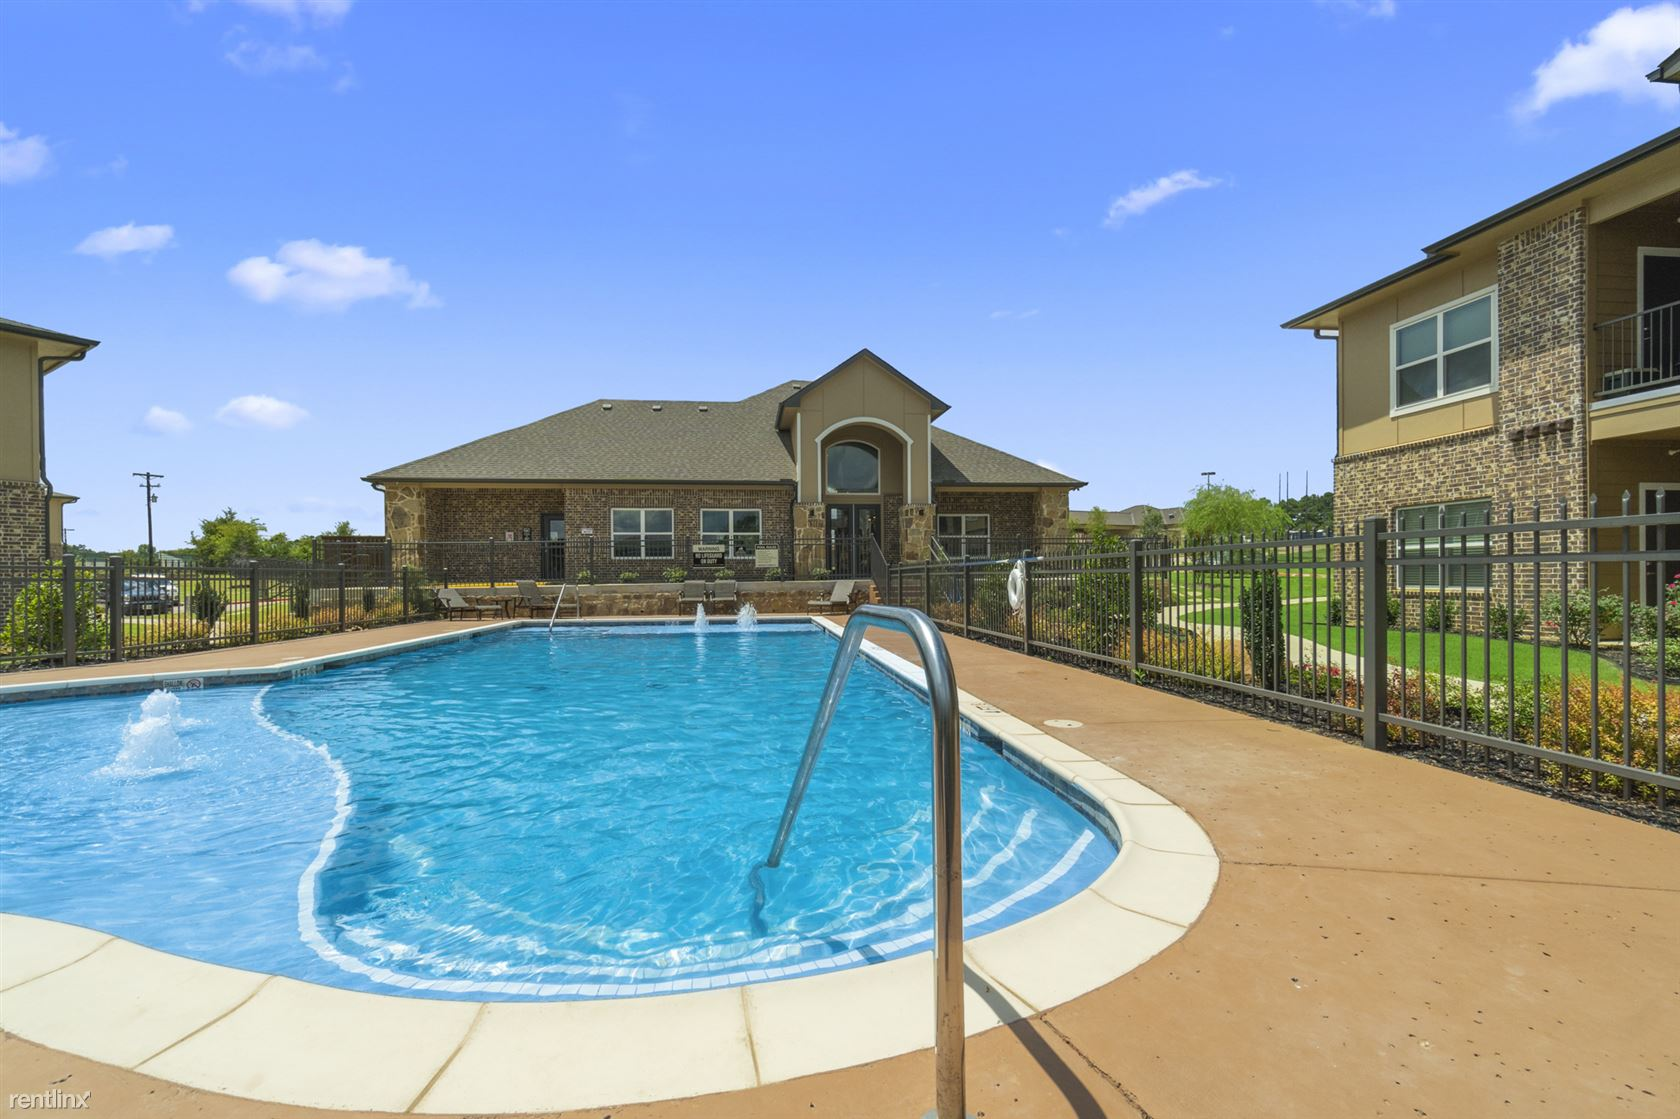 100 Damon Allen Way, Palestine, TX - $885